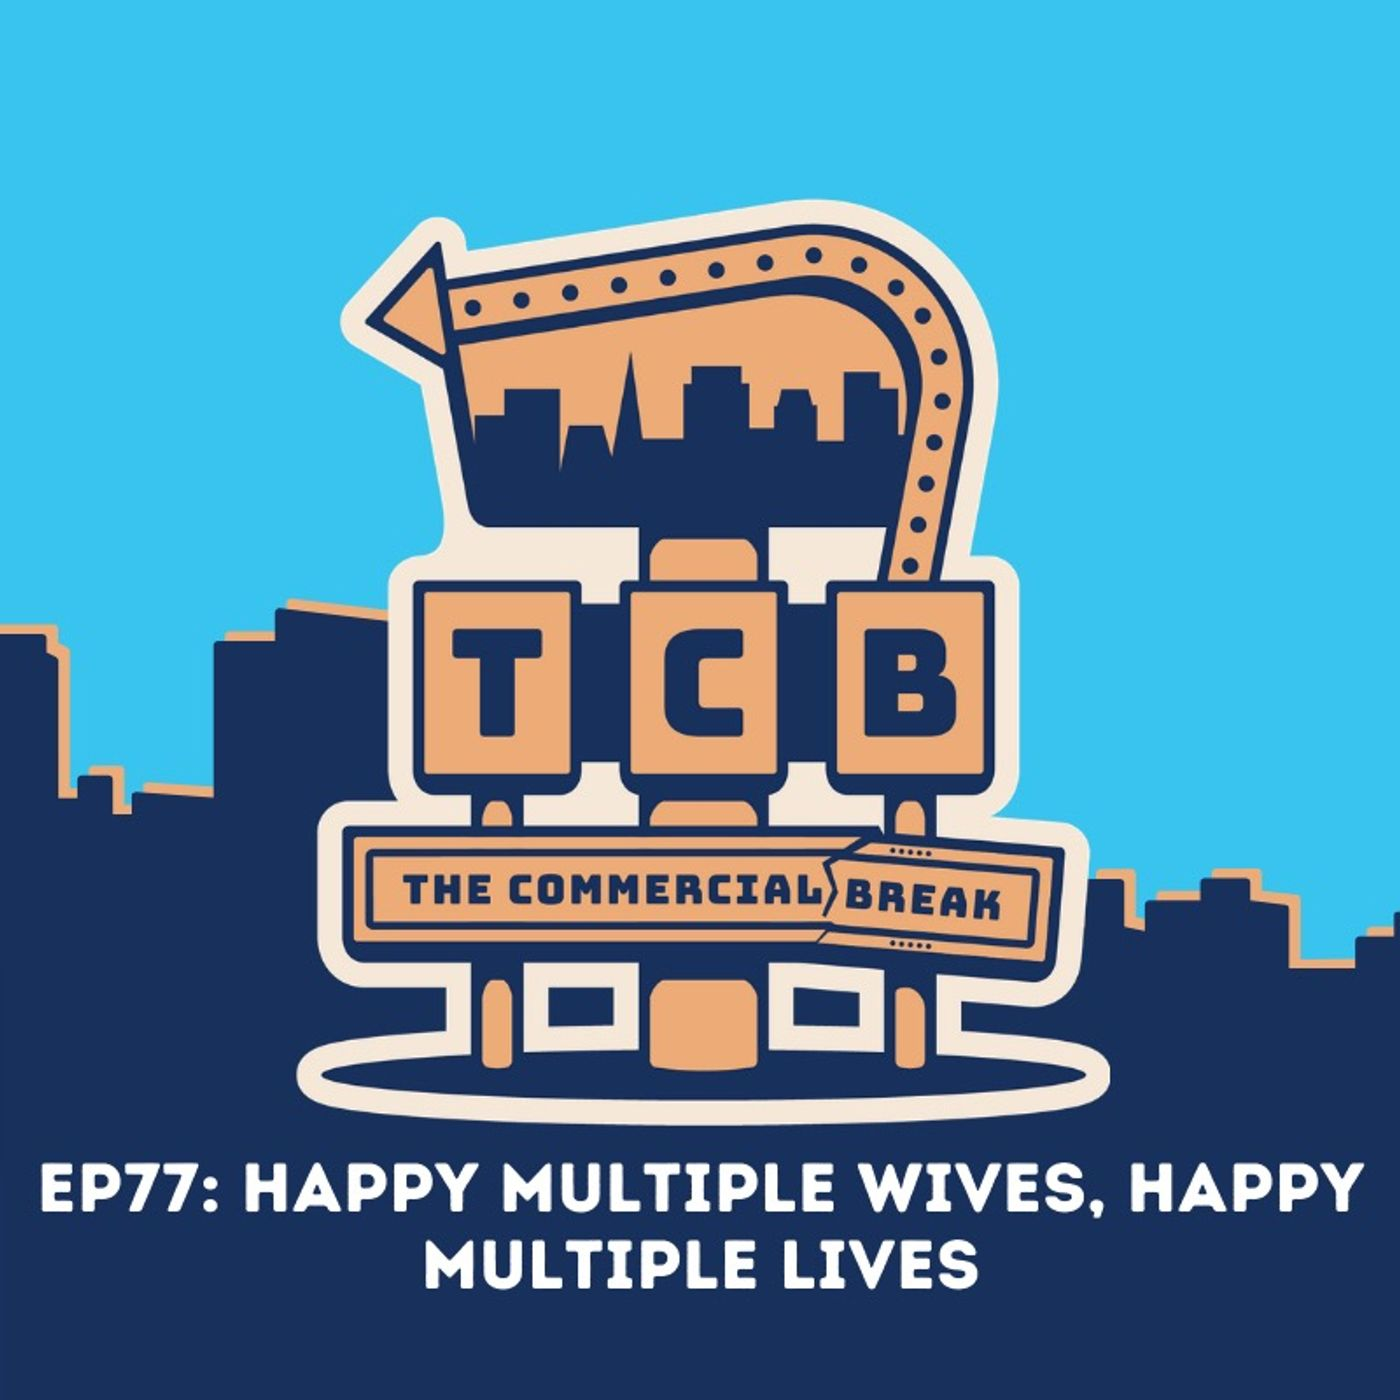 EP77: Happy Multiple Wives, Happy Multiple Lives!